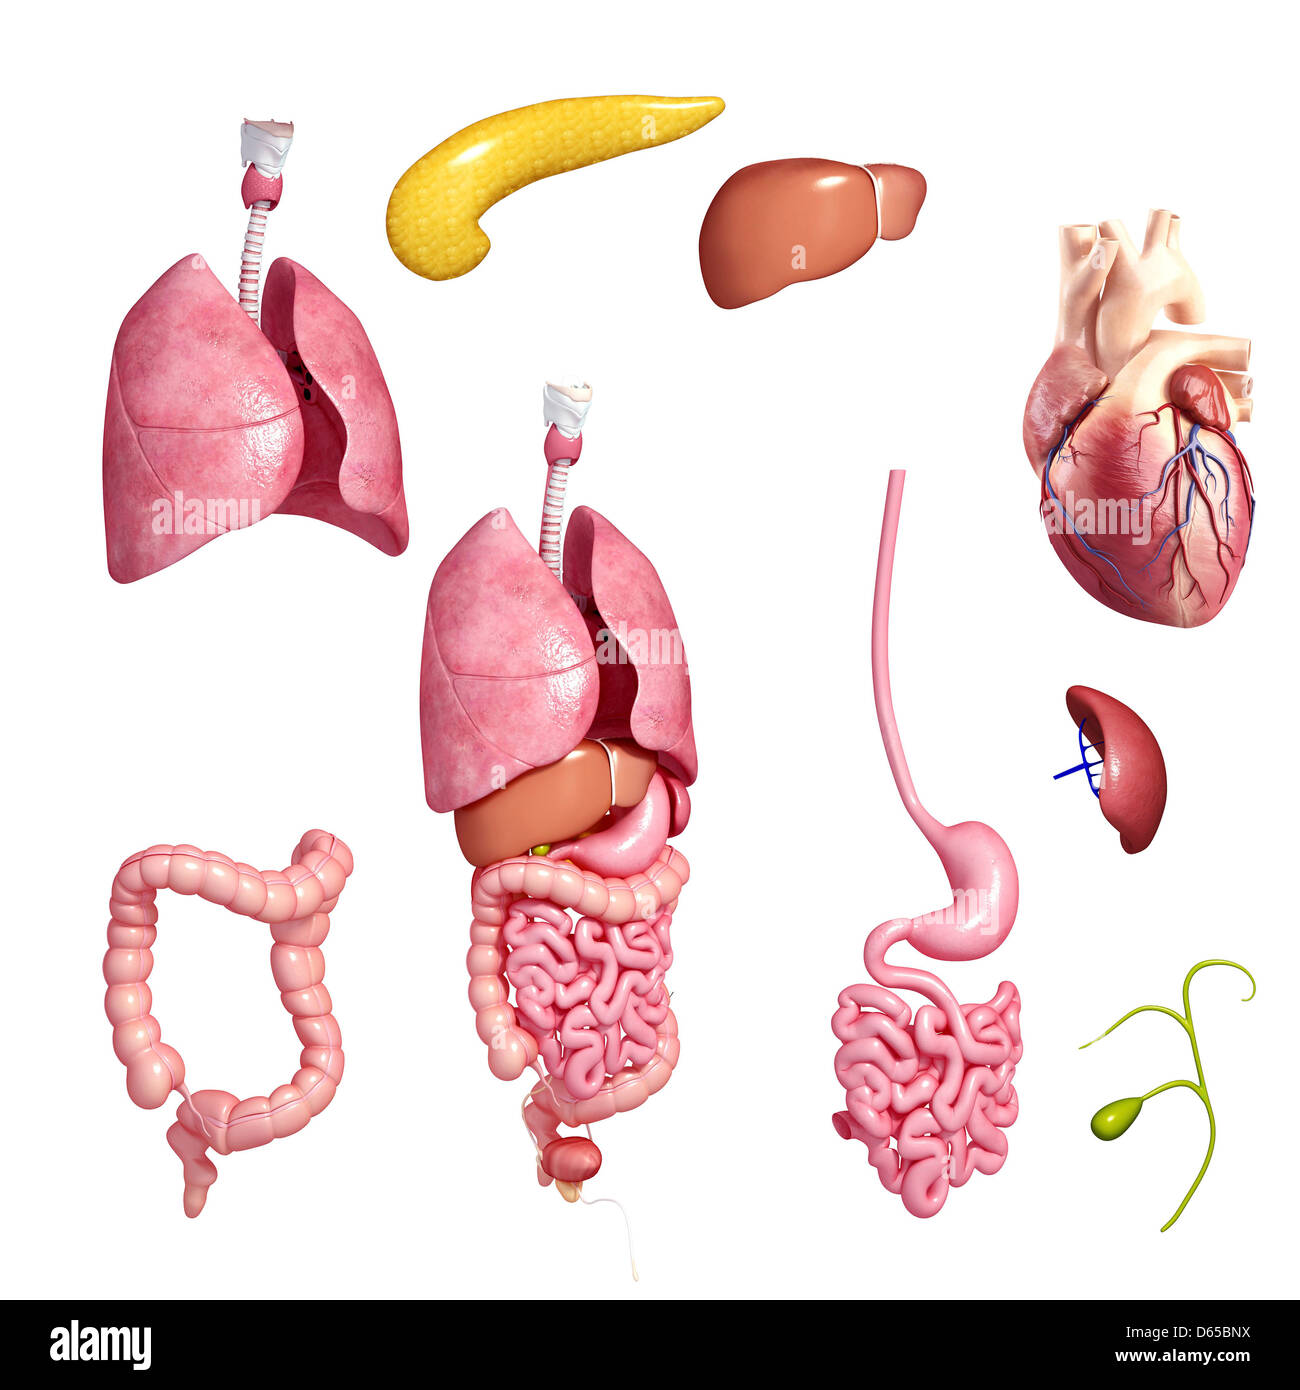 Human organs, artwork - Stock Image